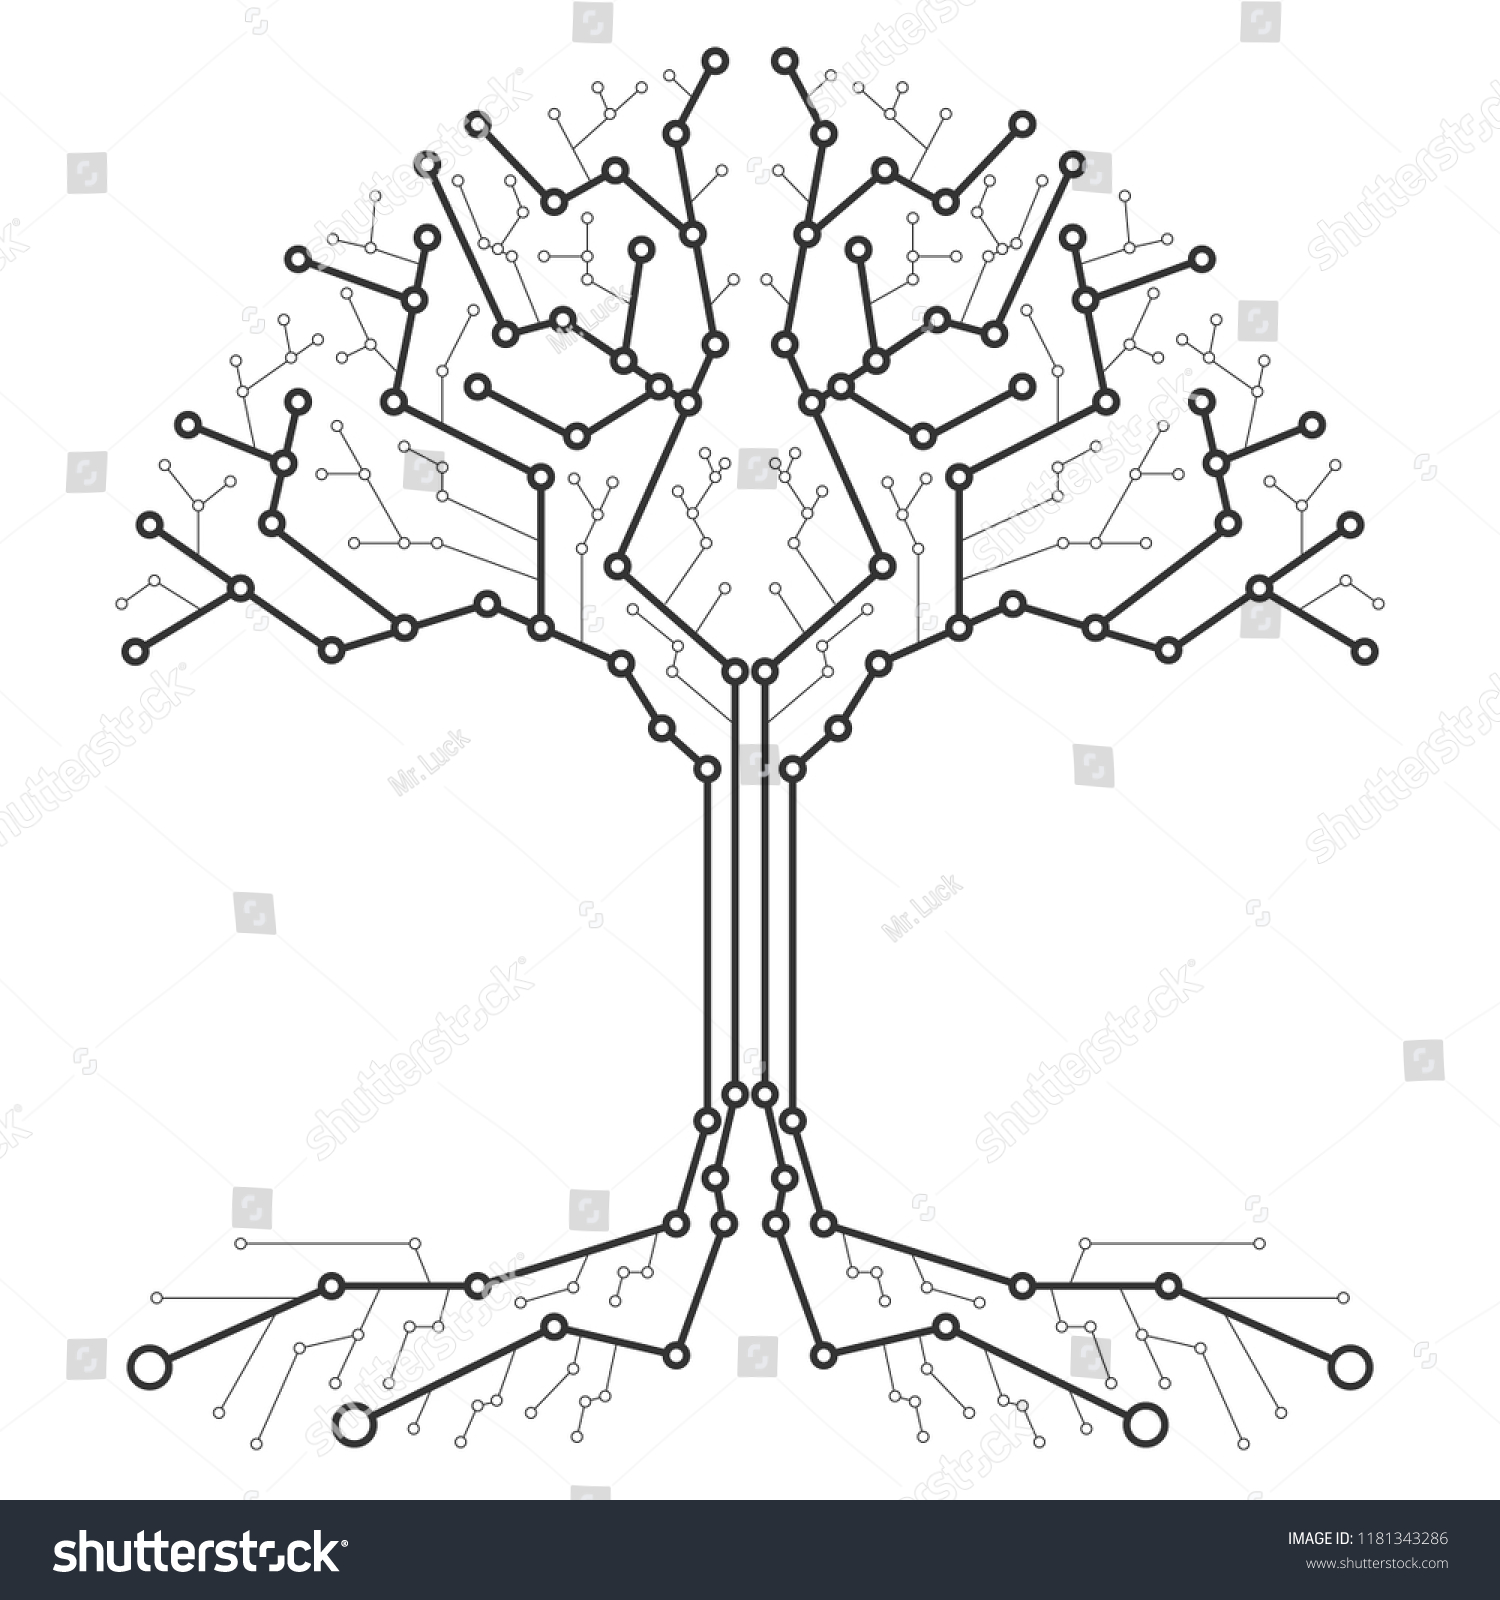 Technological Tree Form Printed Circuit Board Stock Vector Royalty Photos Images Pictures Shutterstock In The Of A Black And White Wood